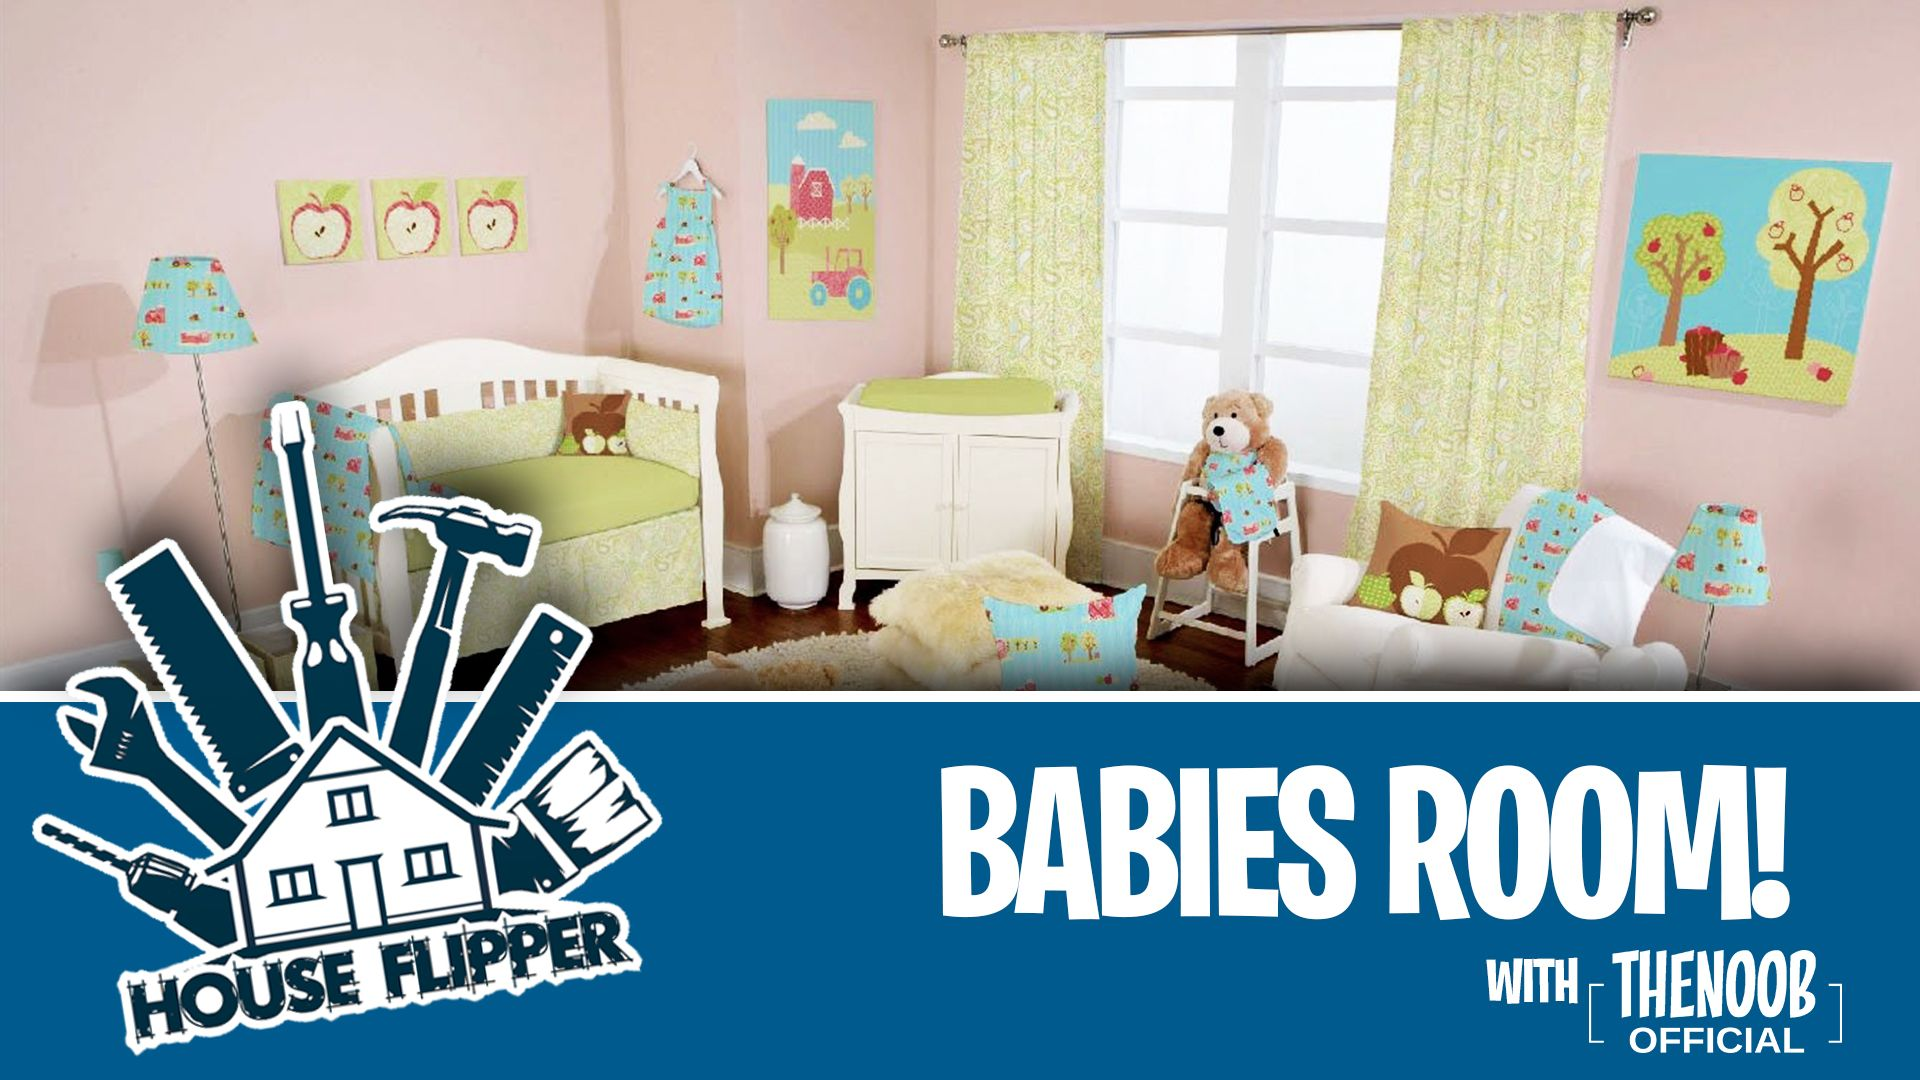 #Letsplay #Houseflipper Babies Room #02 Video Https